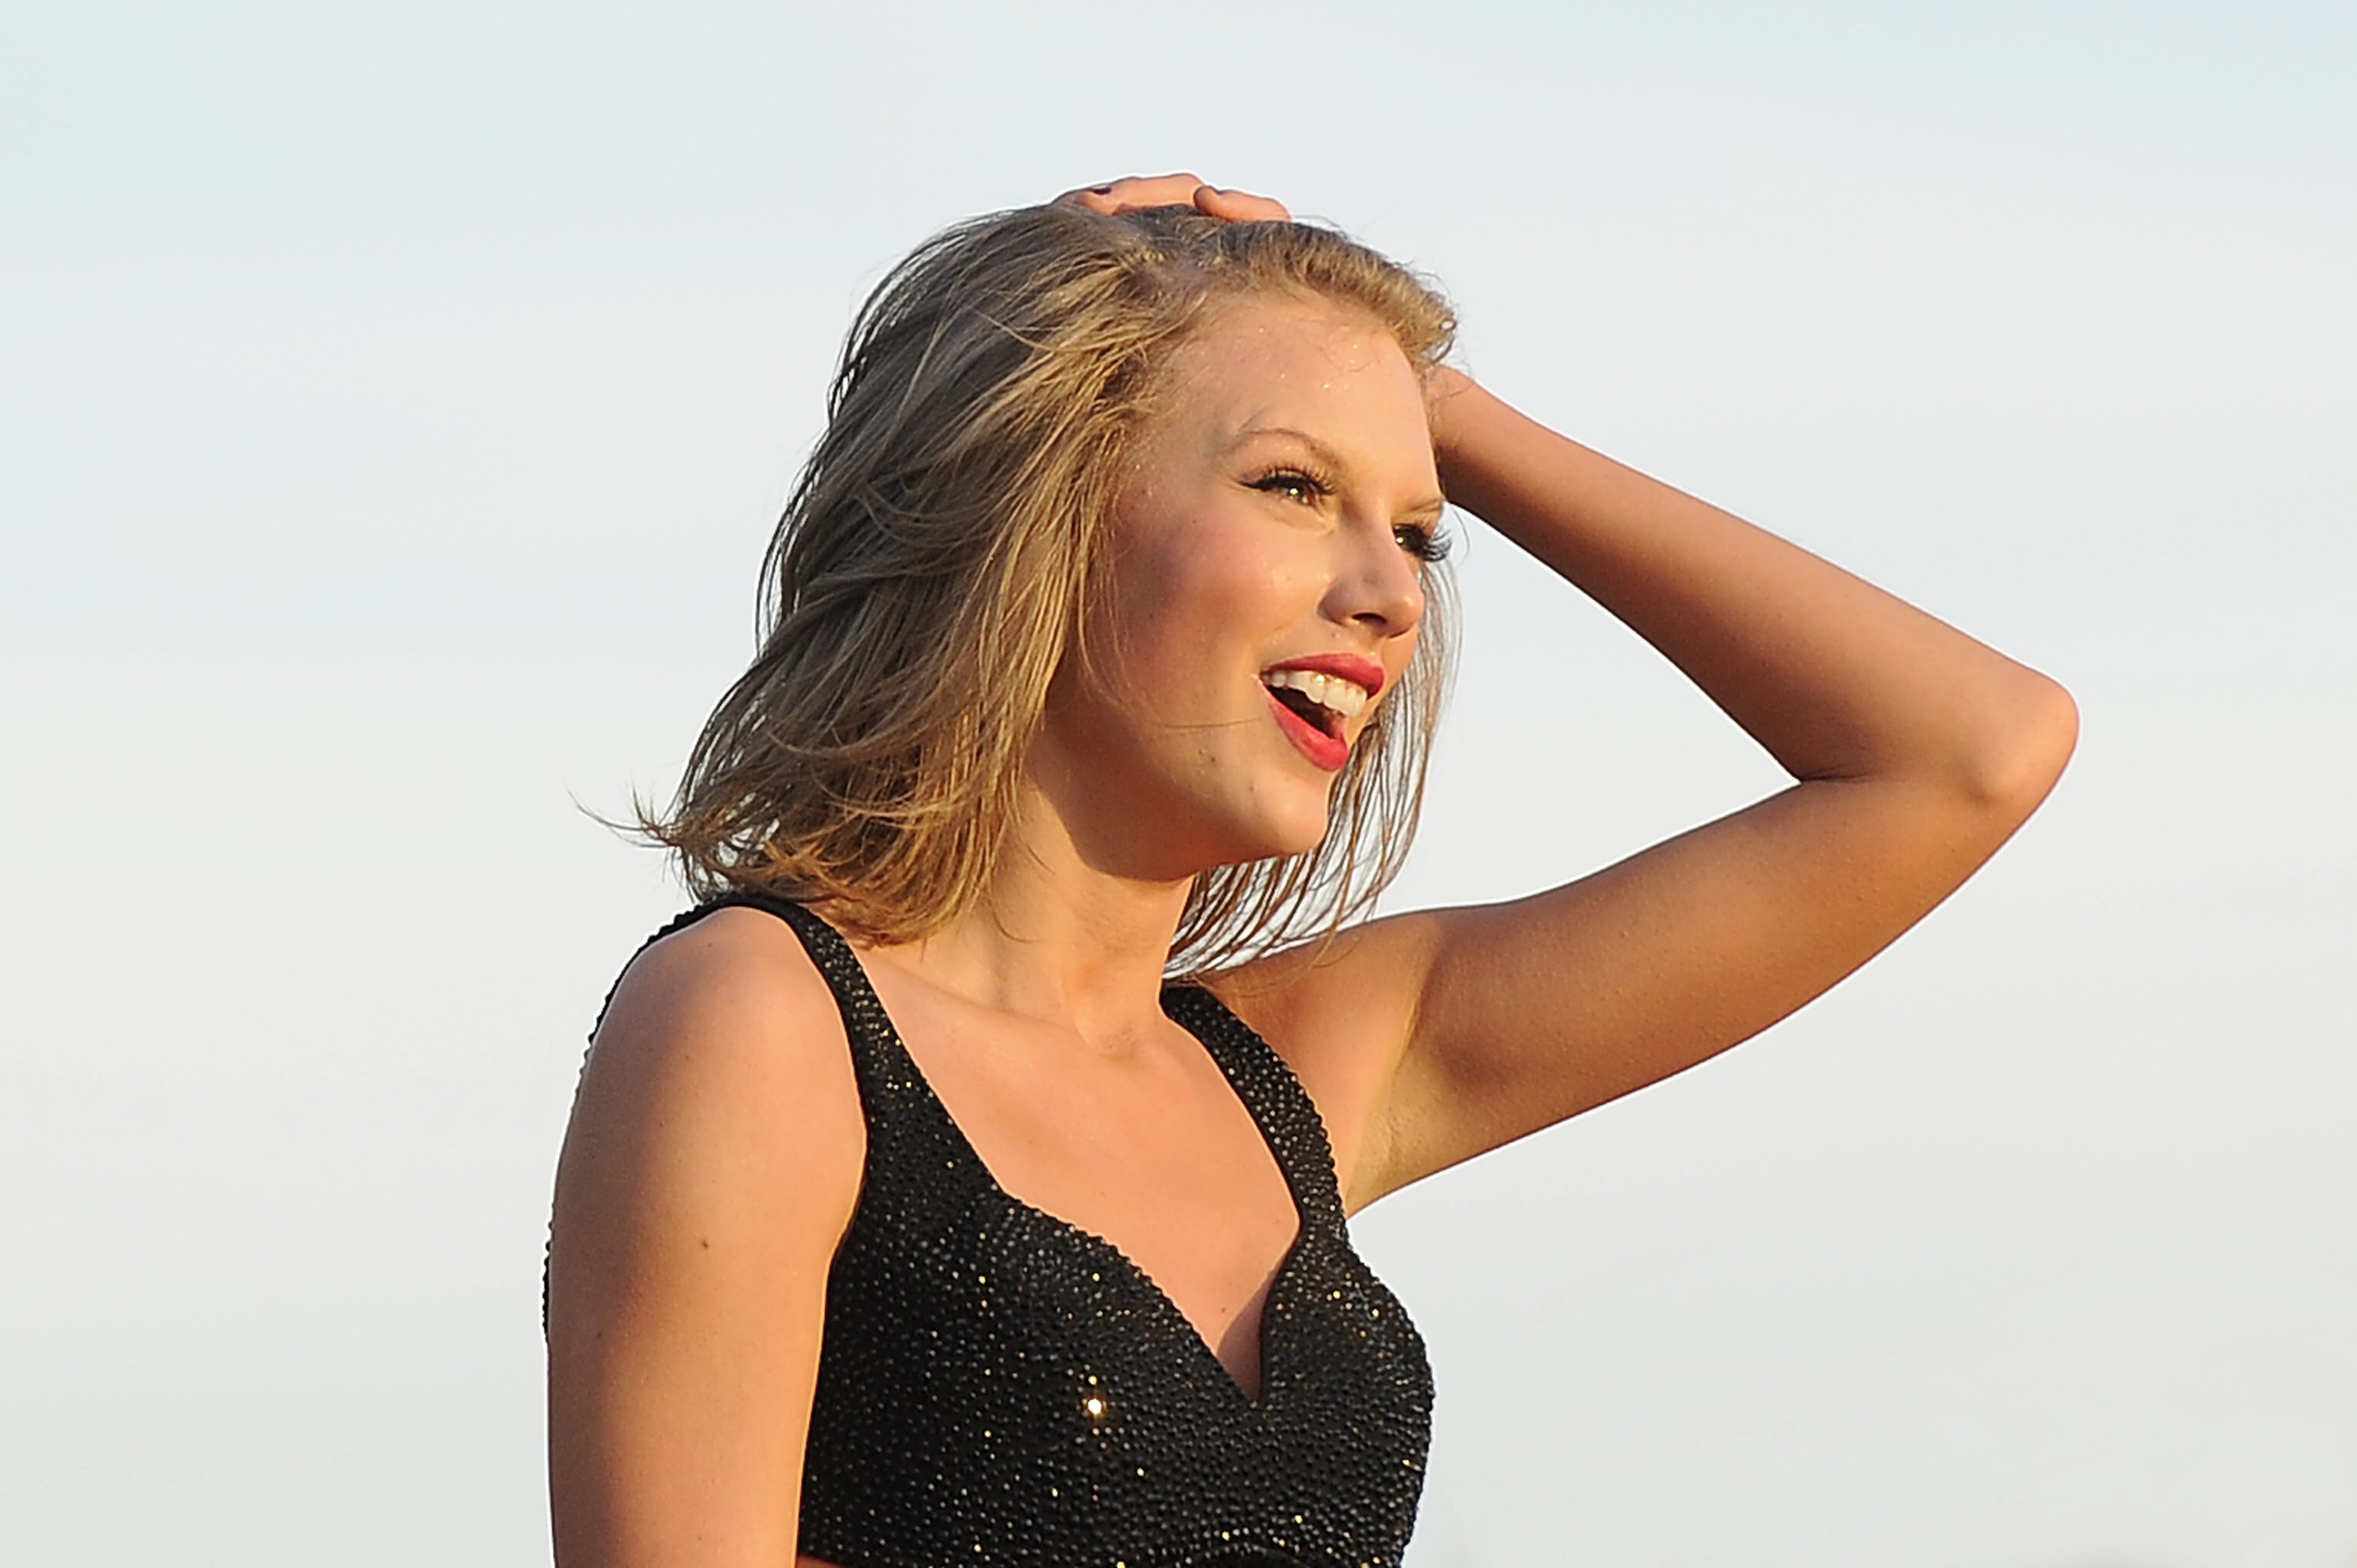 LONDON, ENGLAND - JUNE 27: Taylor Swift performing at Barclaycard British Summer Time, Hyde Park on June 27, 2015 in London,